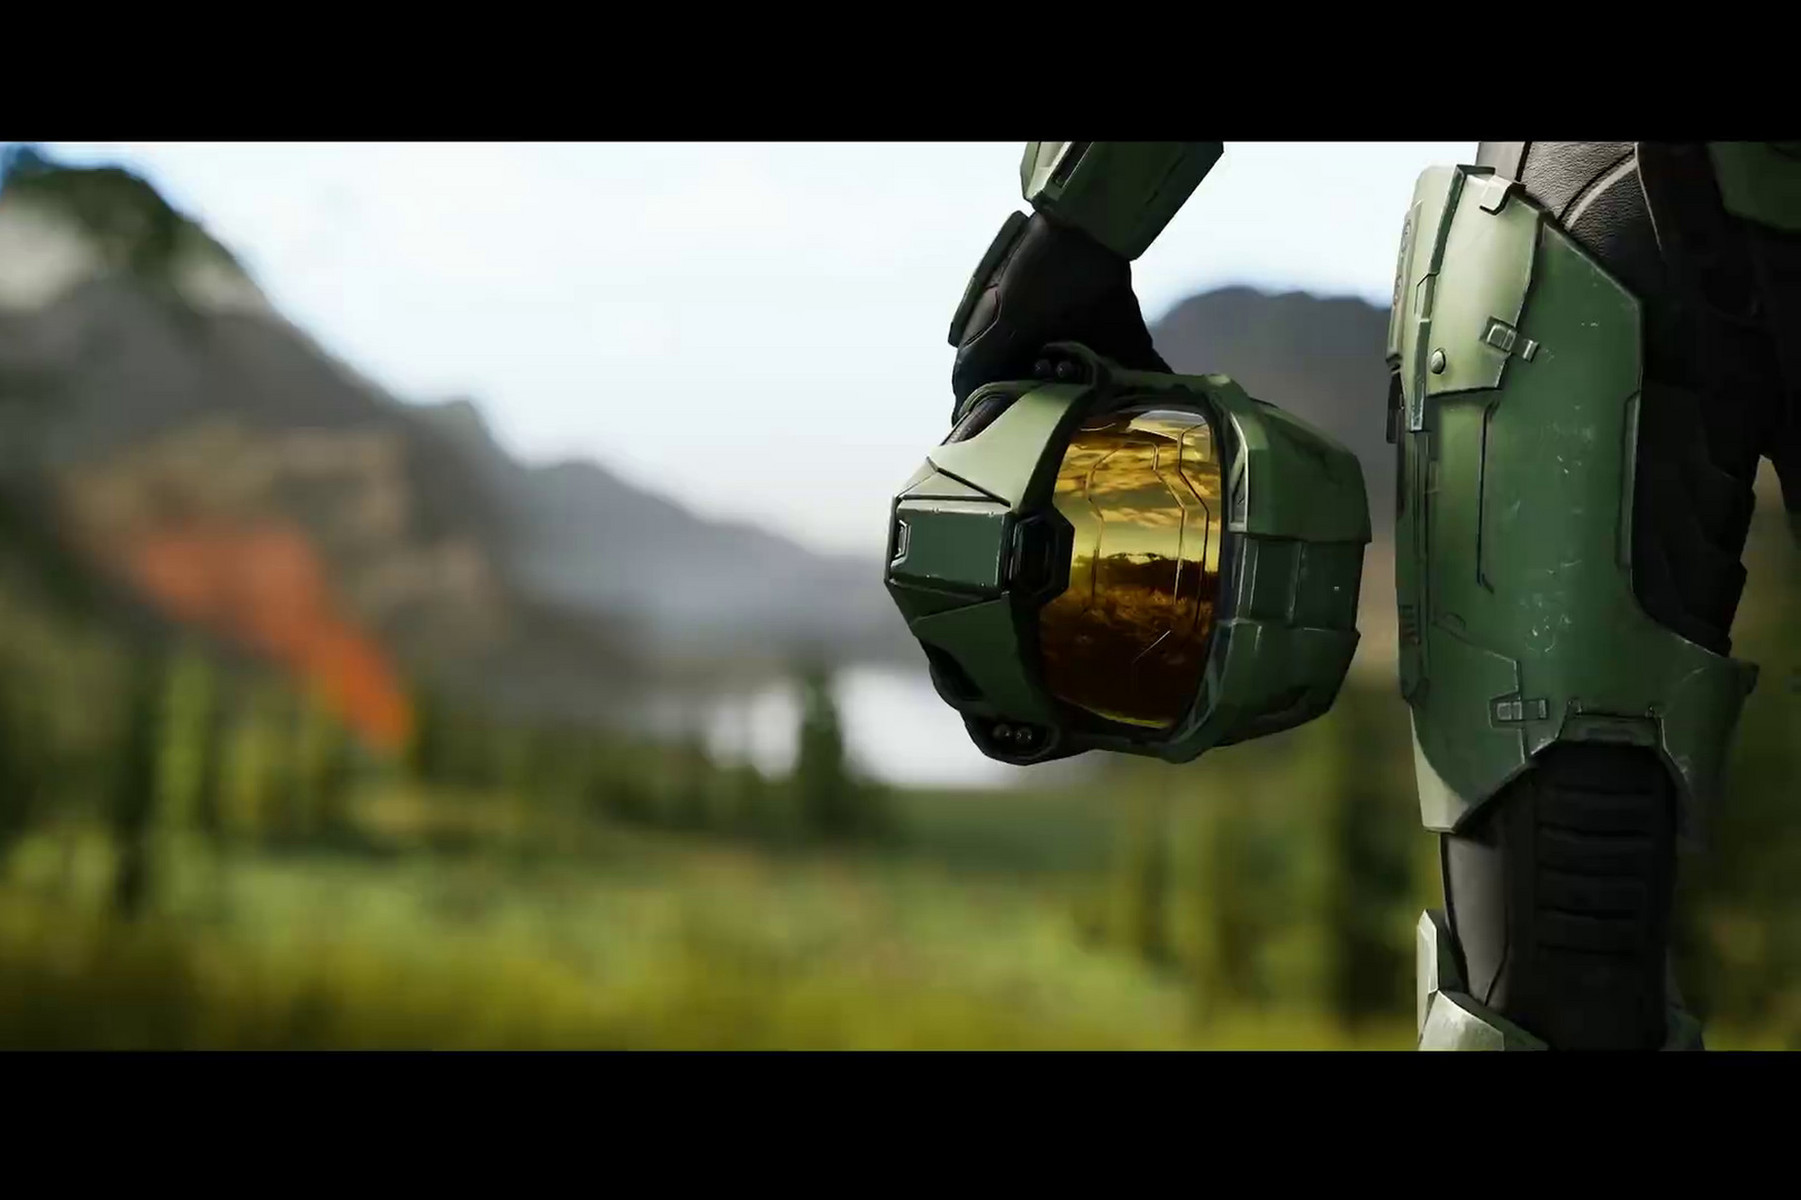 Halo, Madden franchises coming back to PC after a decade